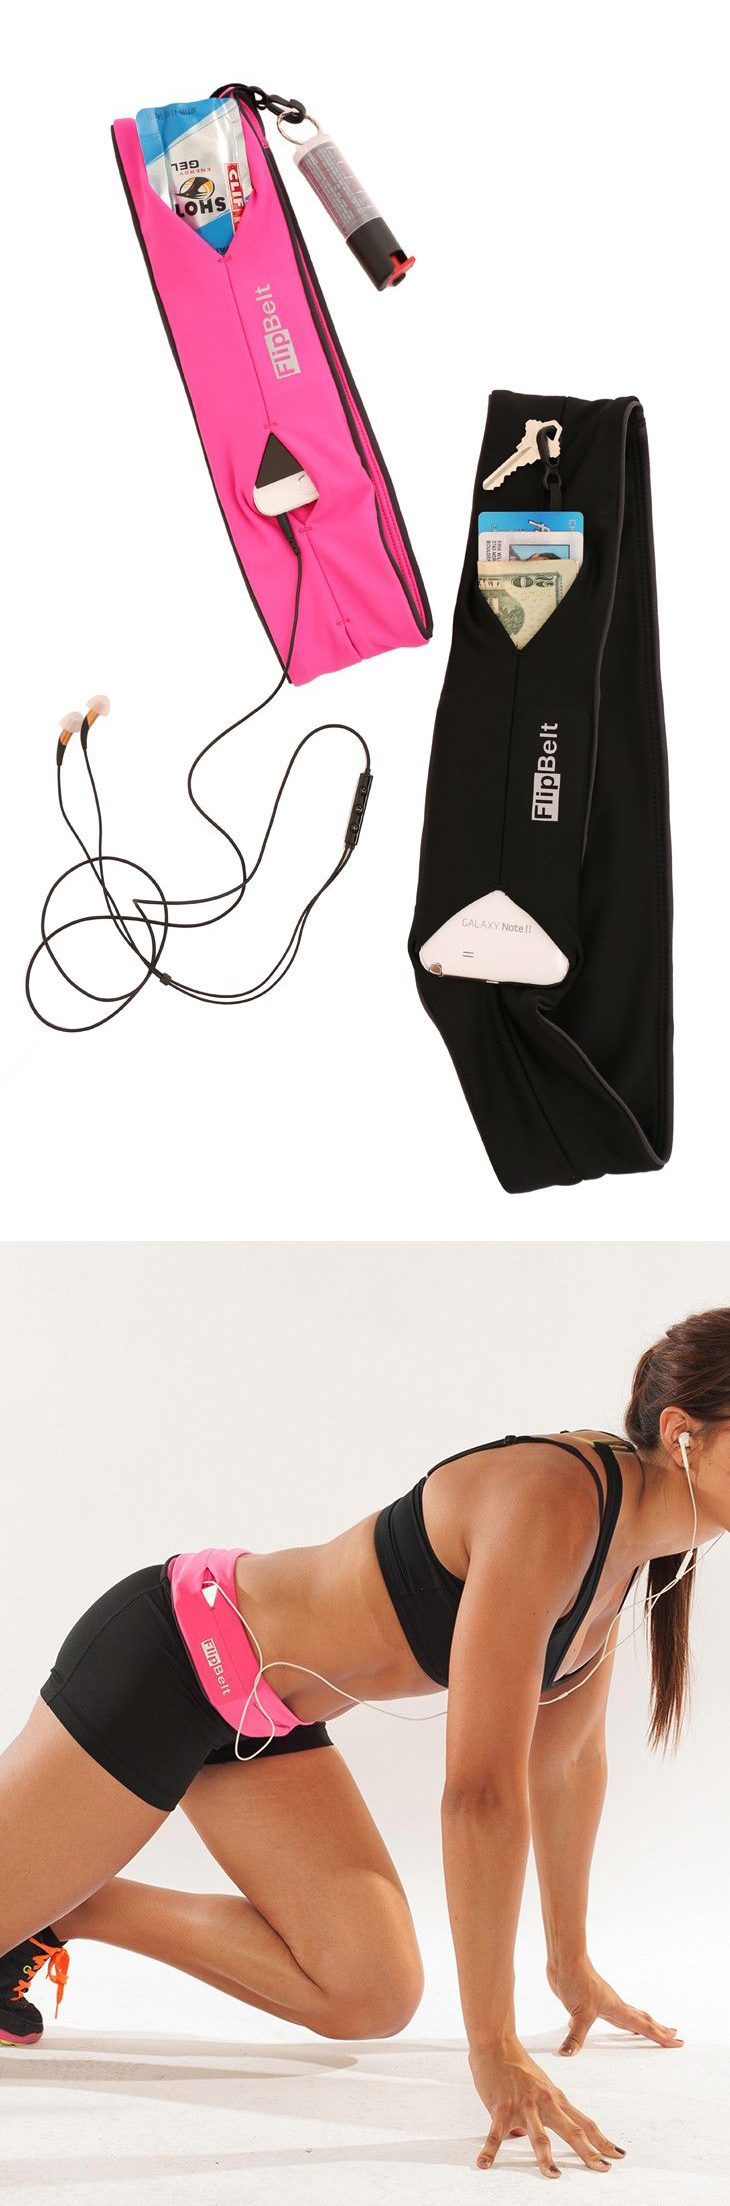 Belt that holds your phone, cards, and keys while you workout, go running, or do yoga!